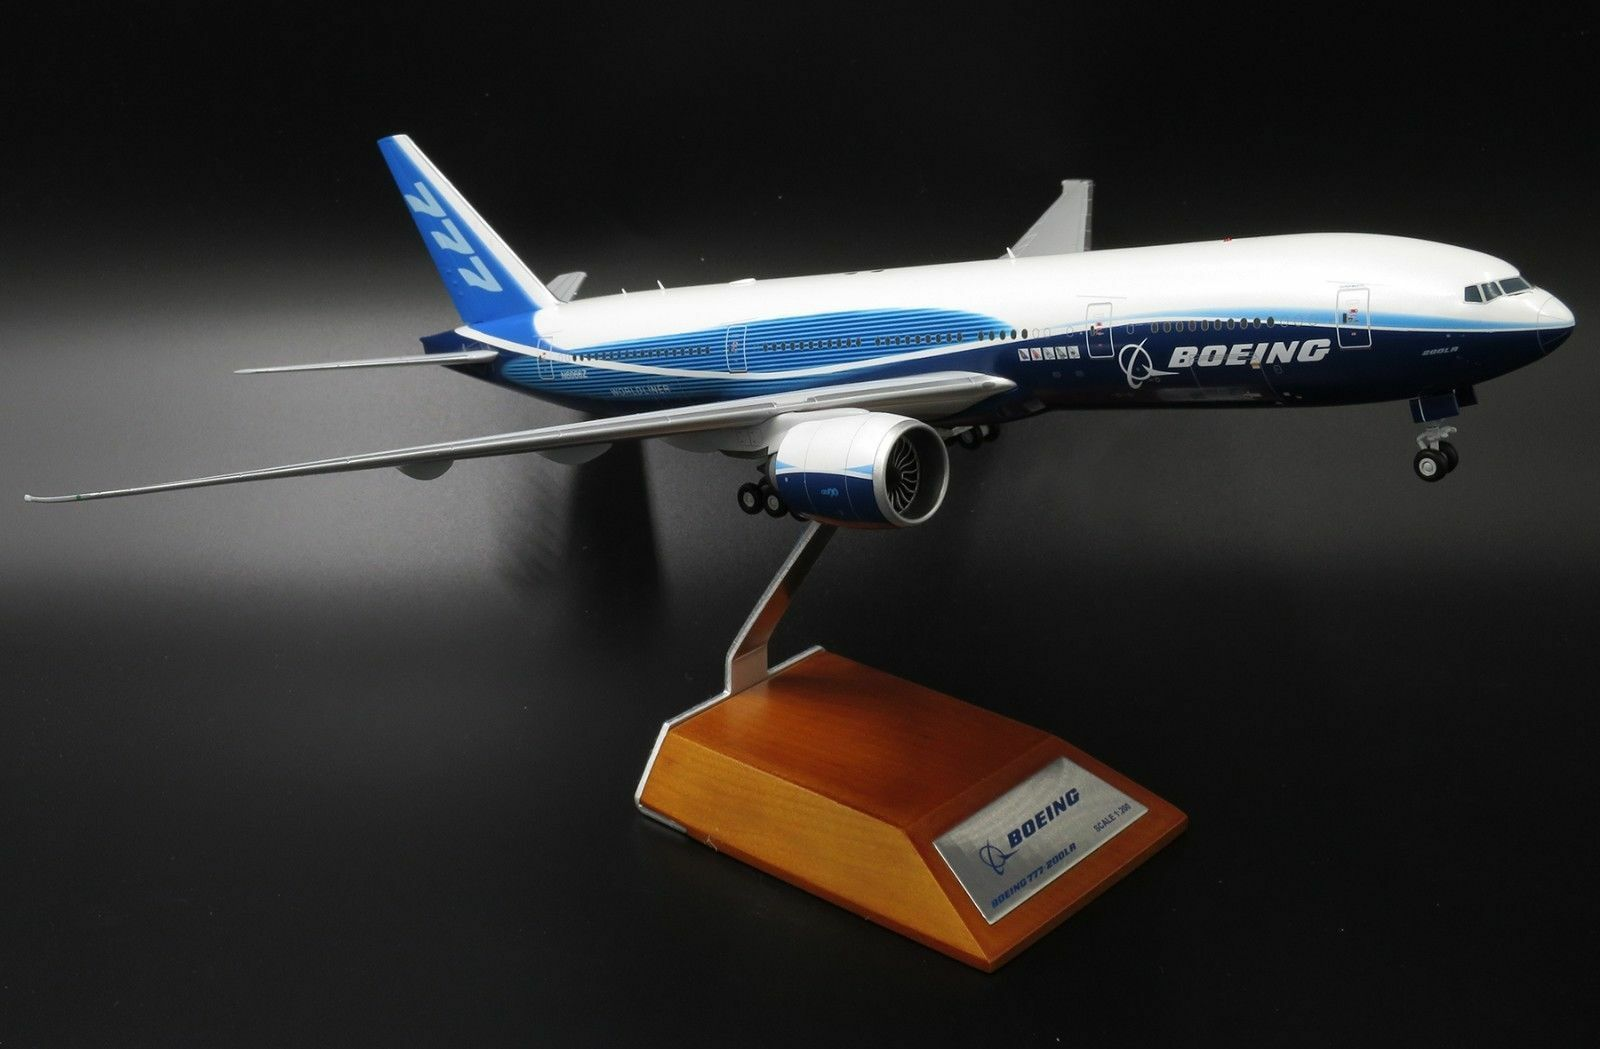 JC WINGS JC2182 1 200 BOEING 777-200LR HOUSE COLOR N6066Z WITH STAND